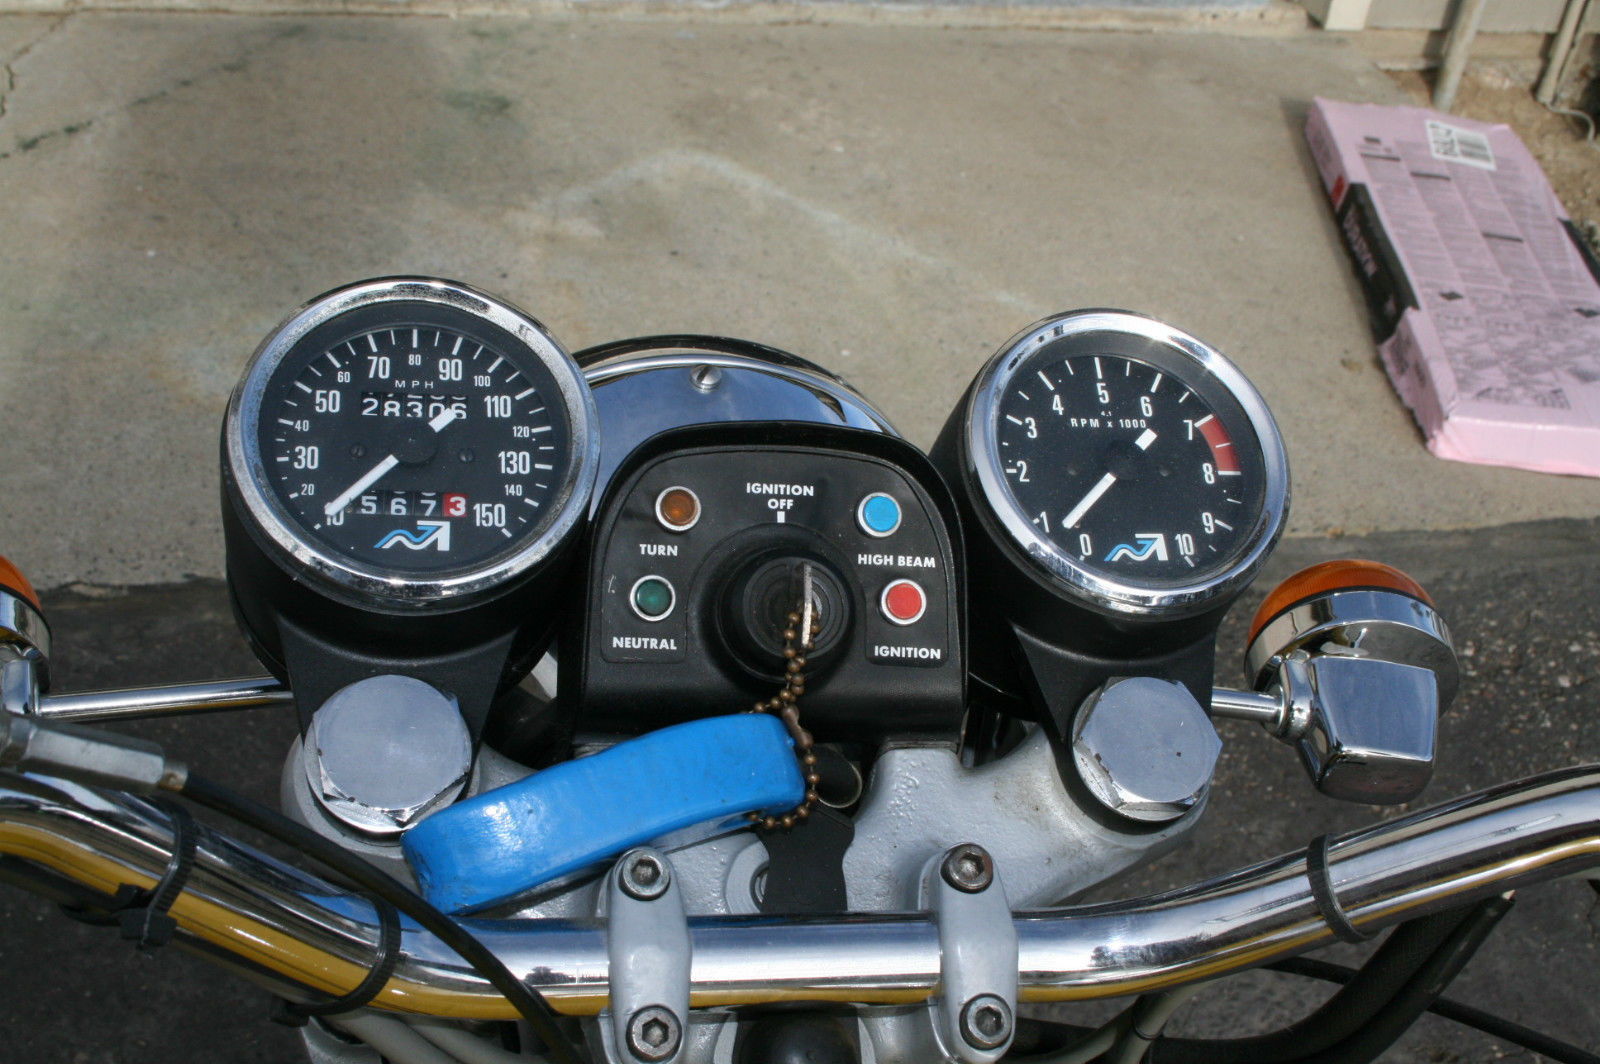 Norton Commando 850 - 1975 - Ignition Switch, Speedo Tacho and Handlebars.